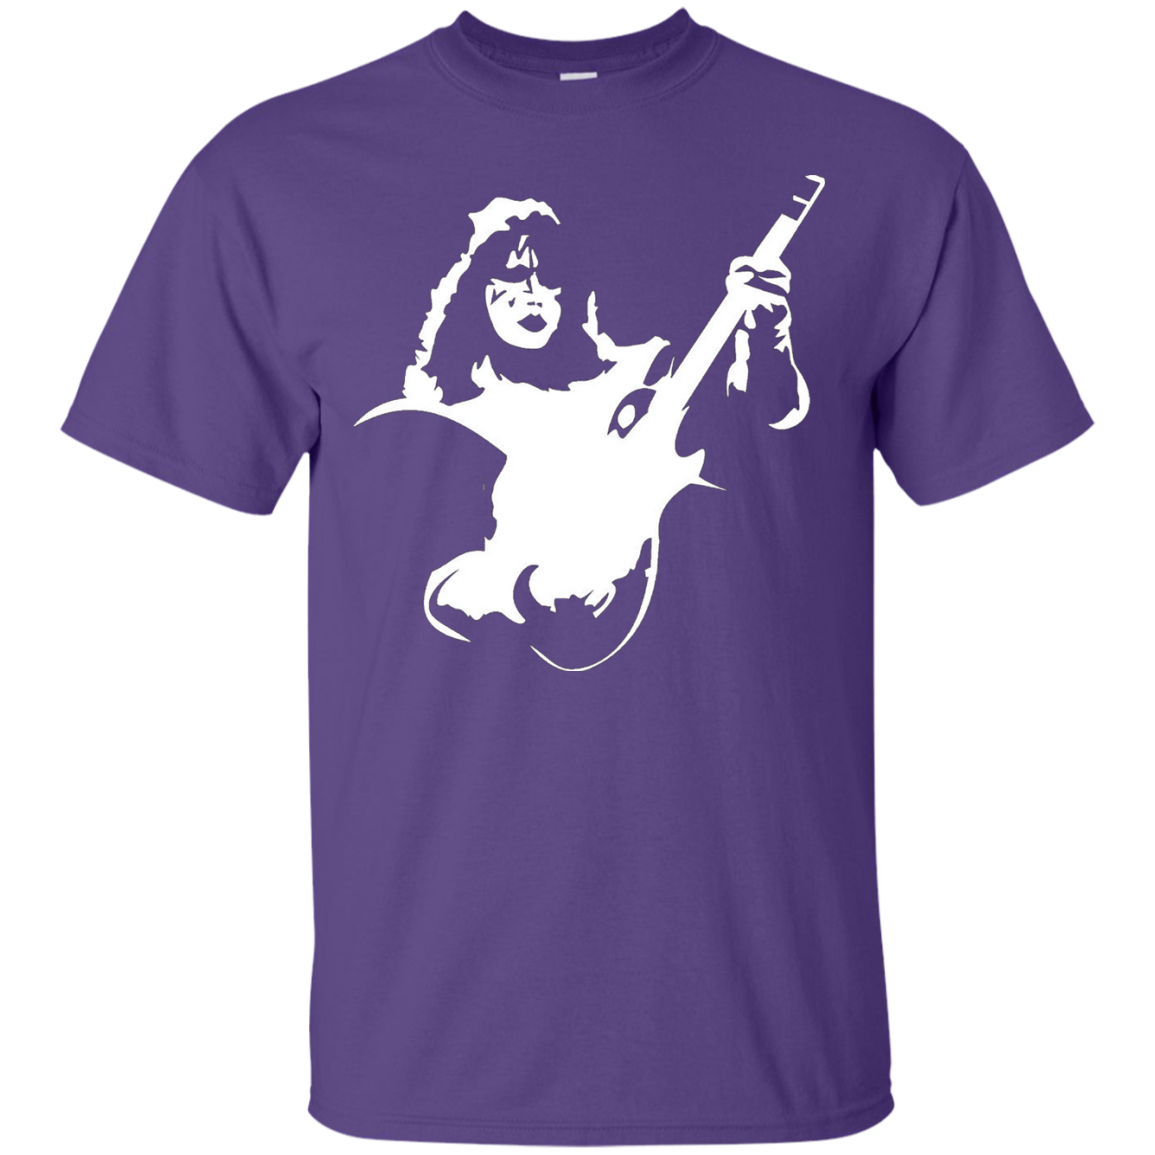 ace frehley t shirt - ace frehley shirt - T-Shirt